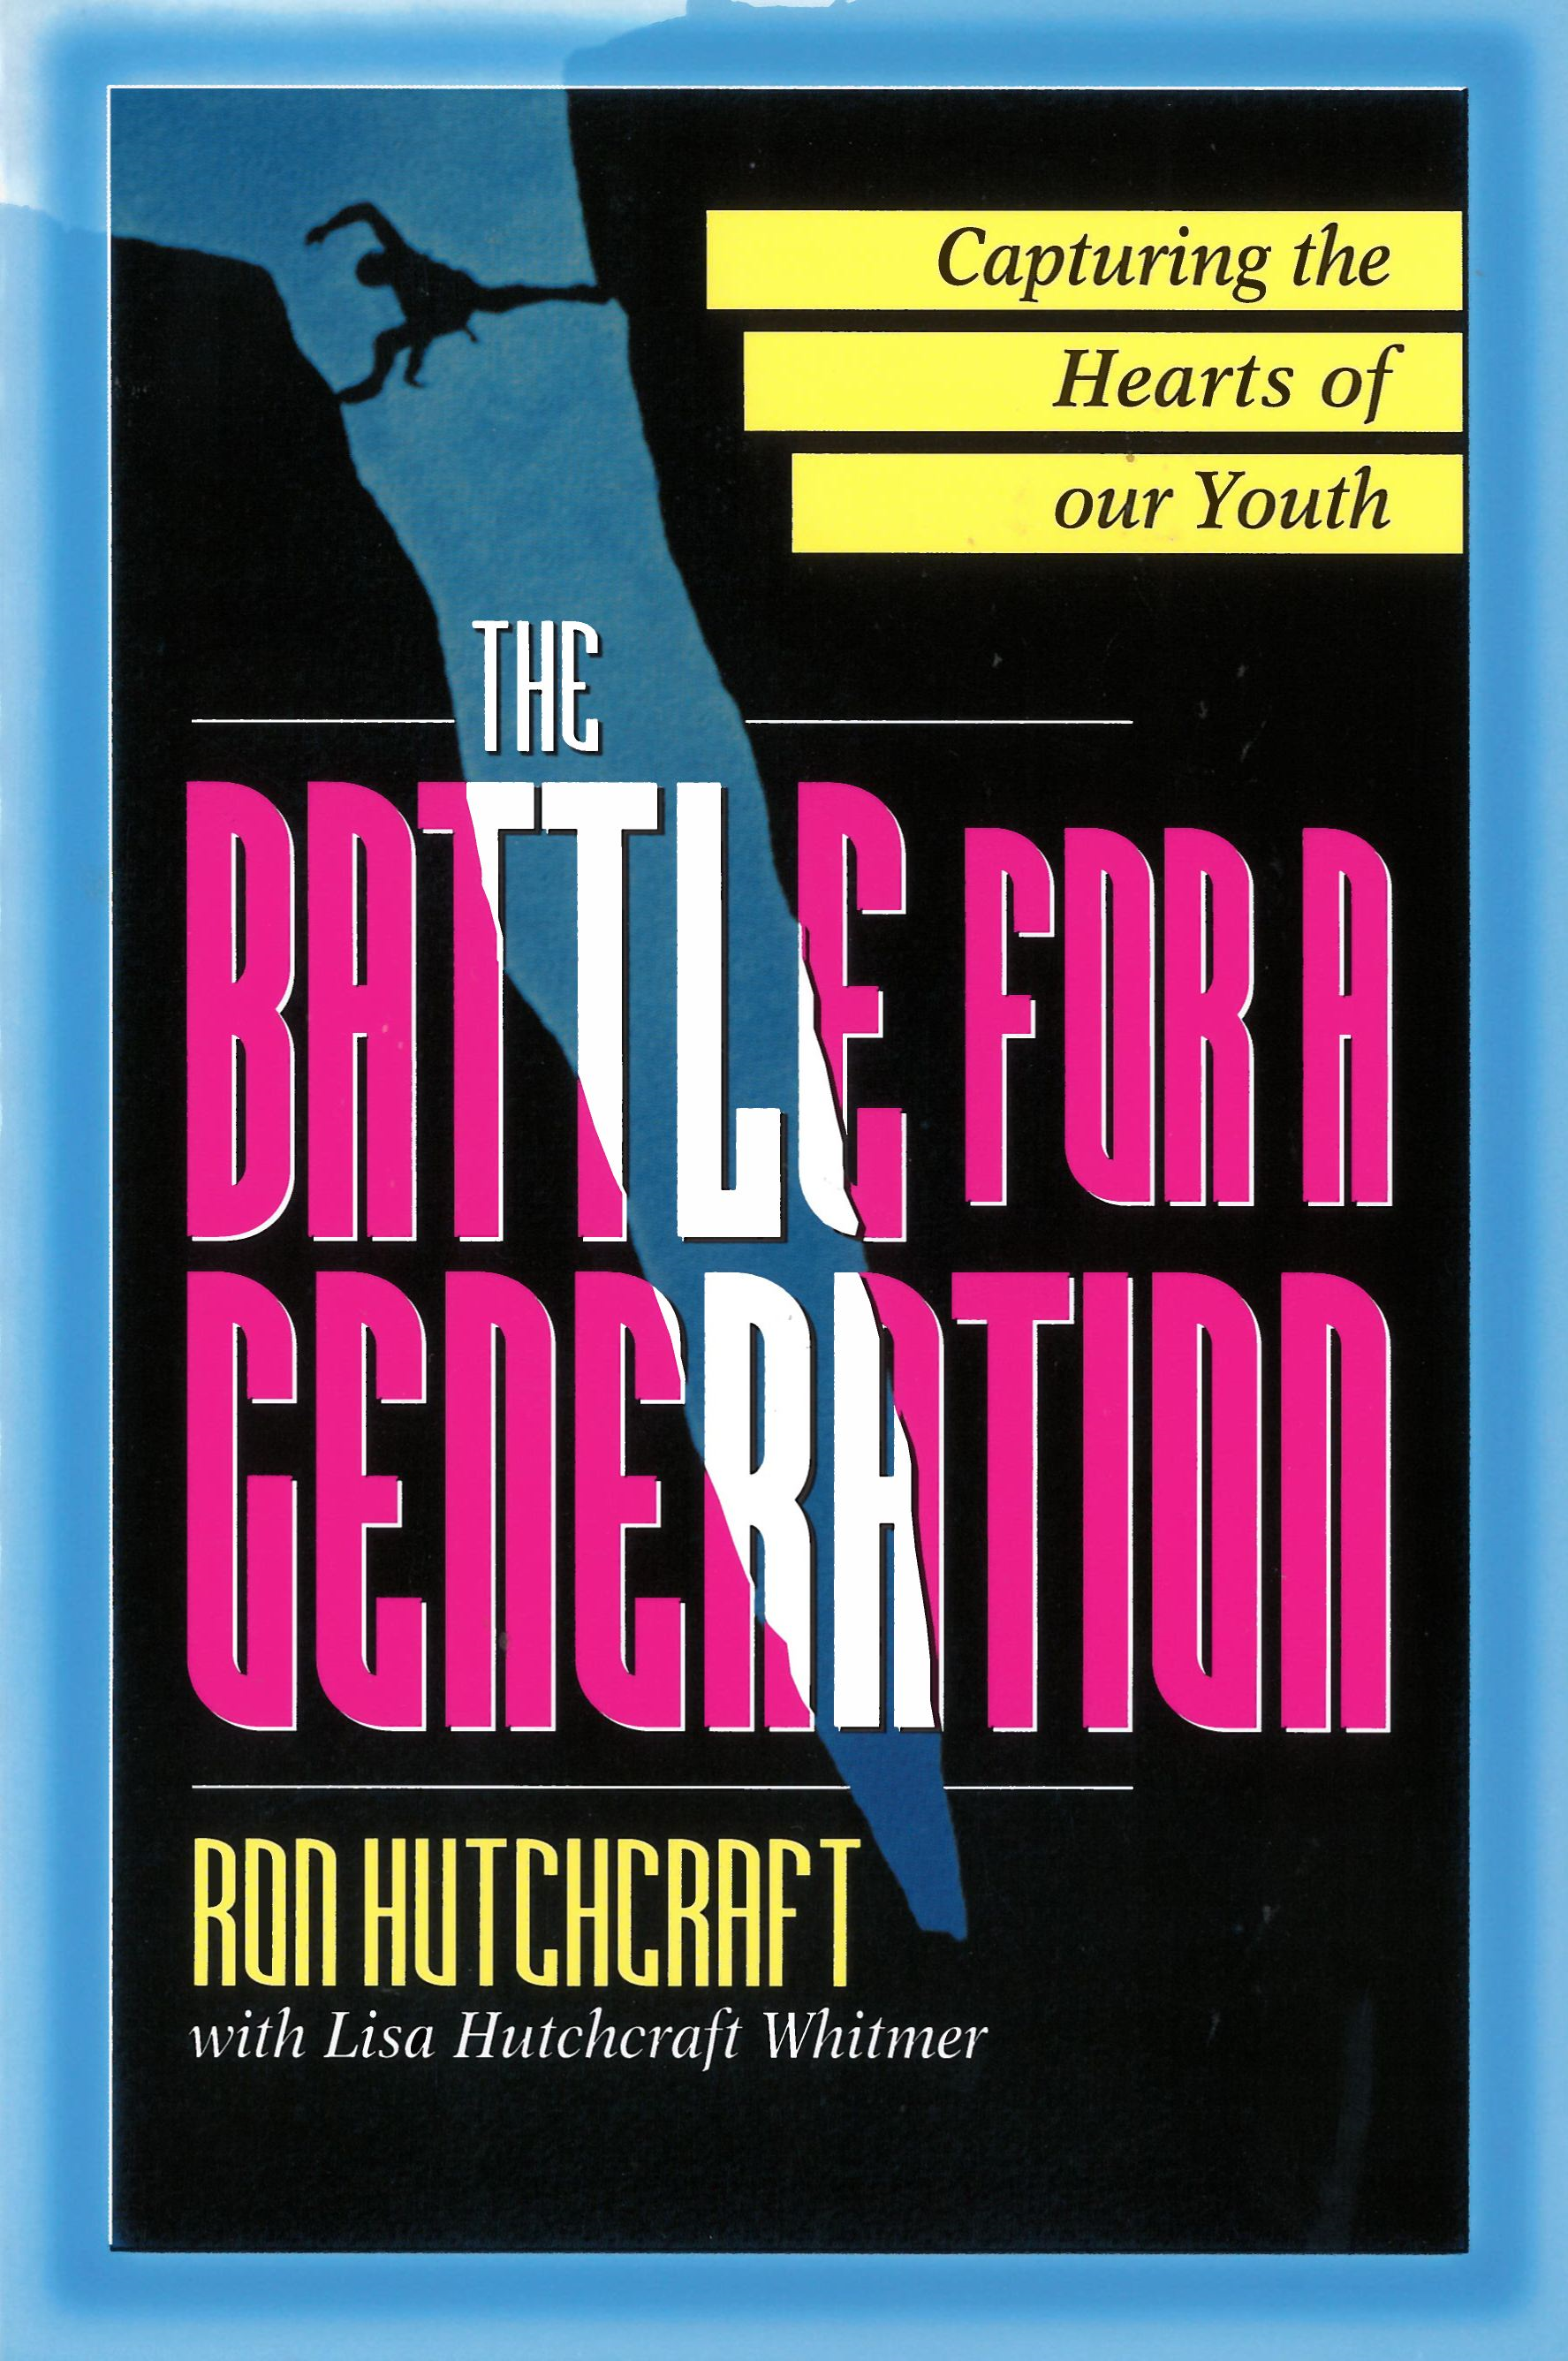 The Battle For A Generation By: Ron P. Hutchcraft